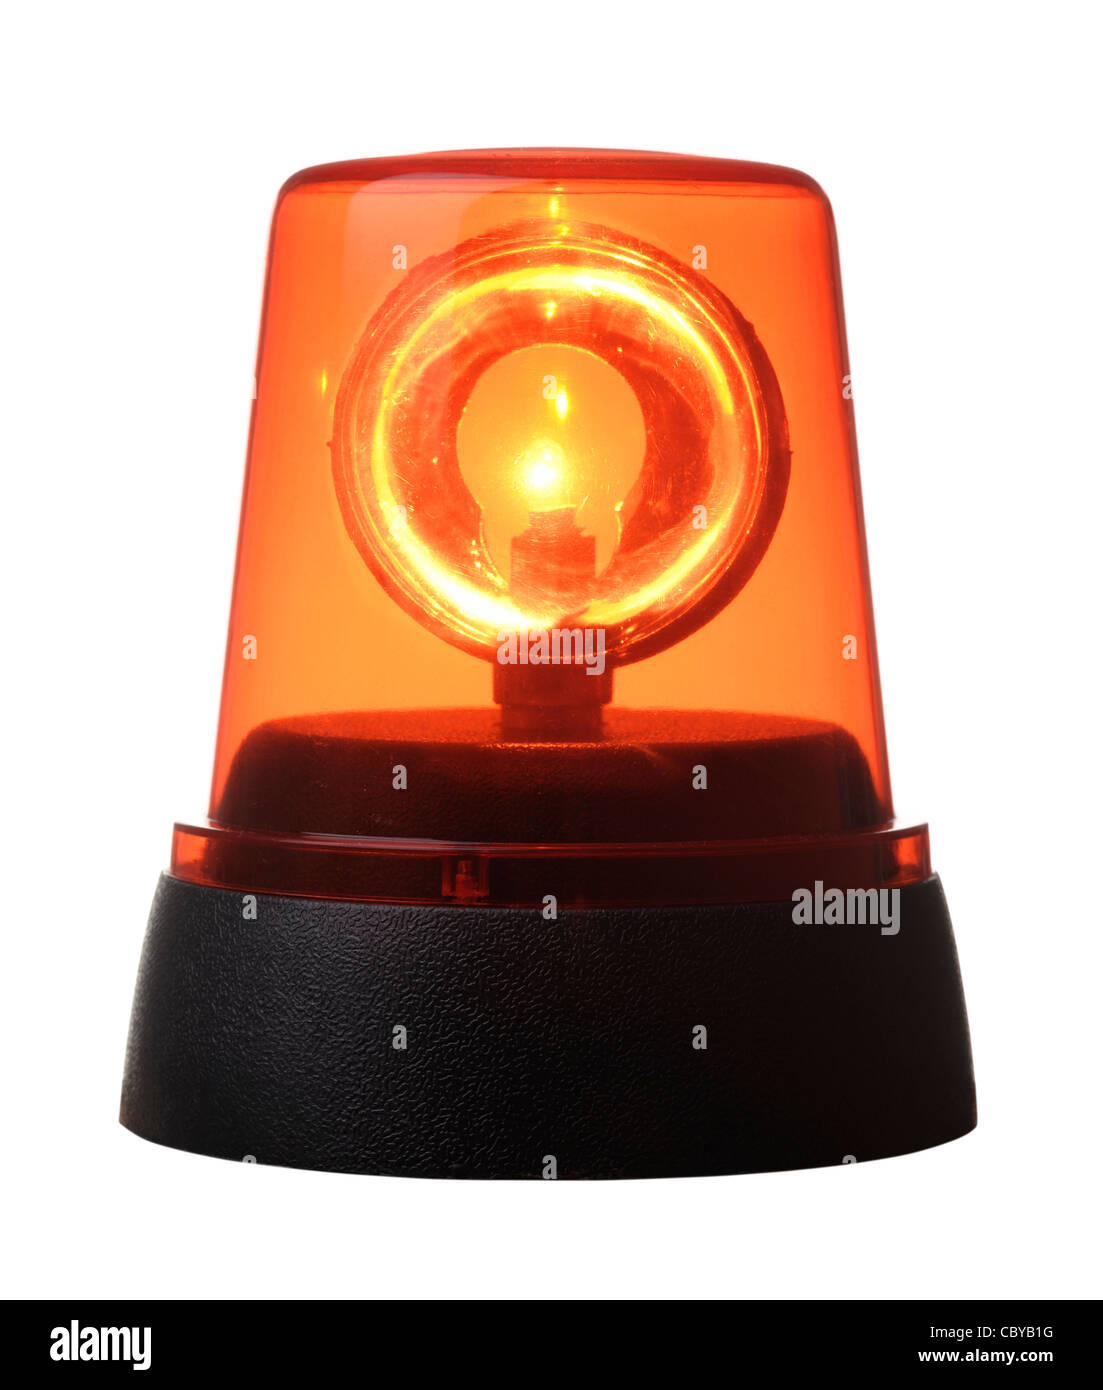 Orange flashing light - Stock Image